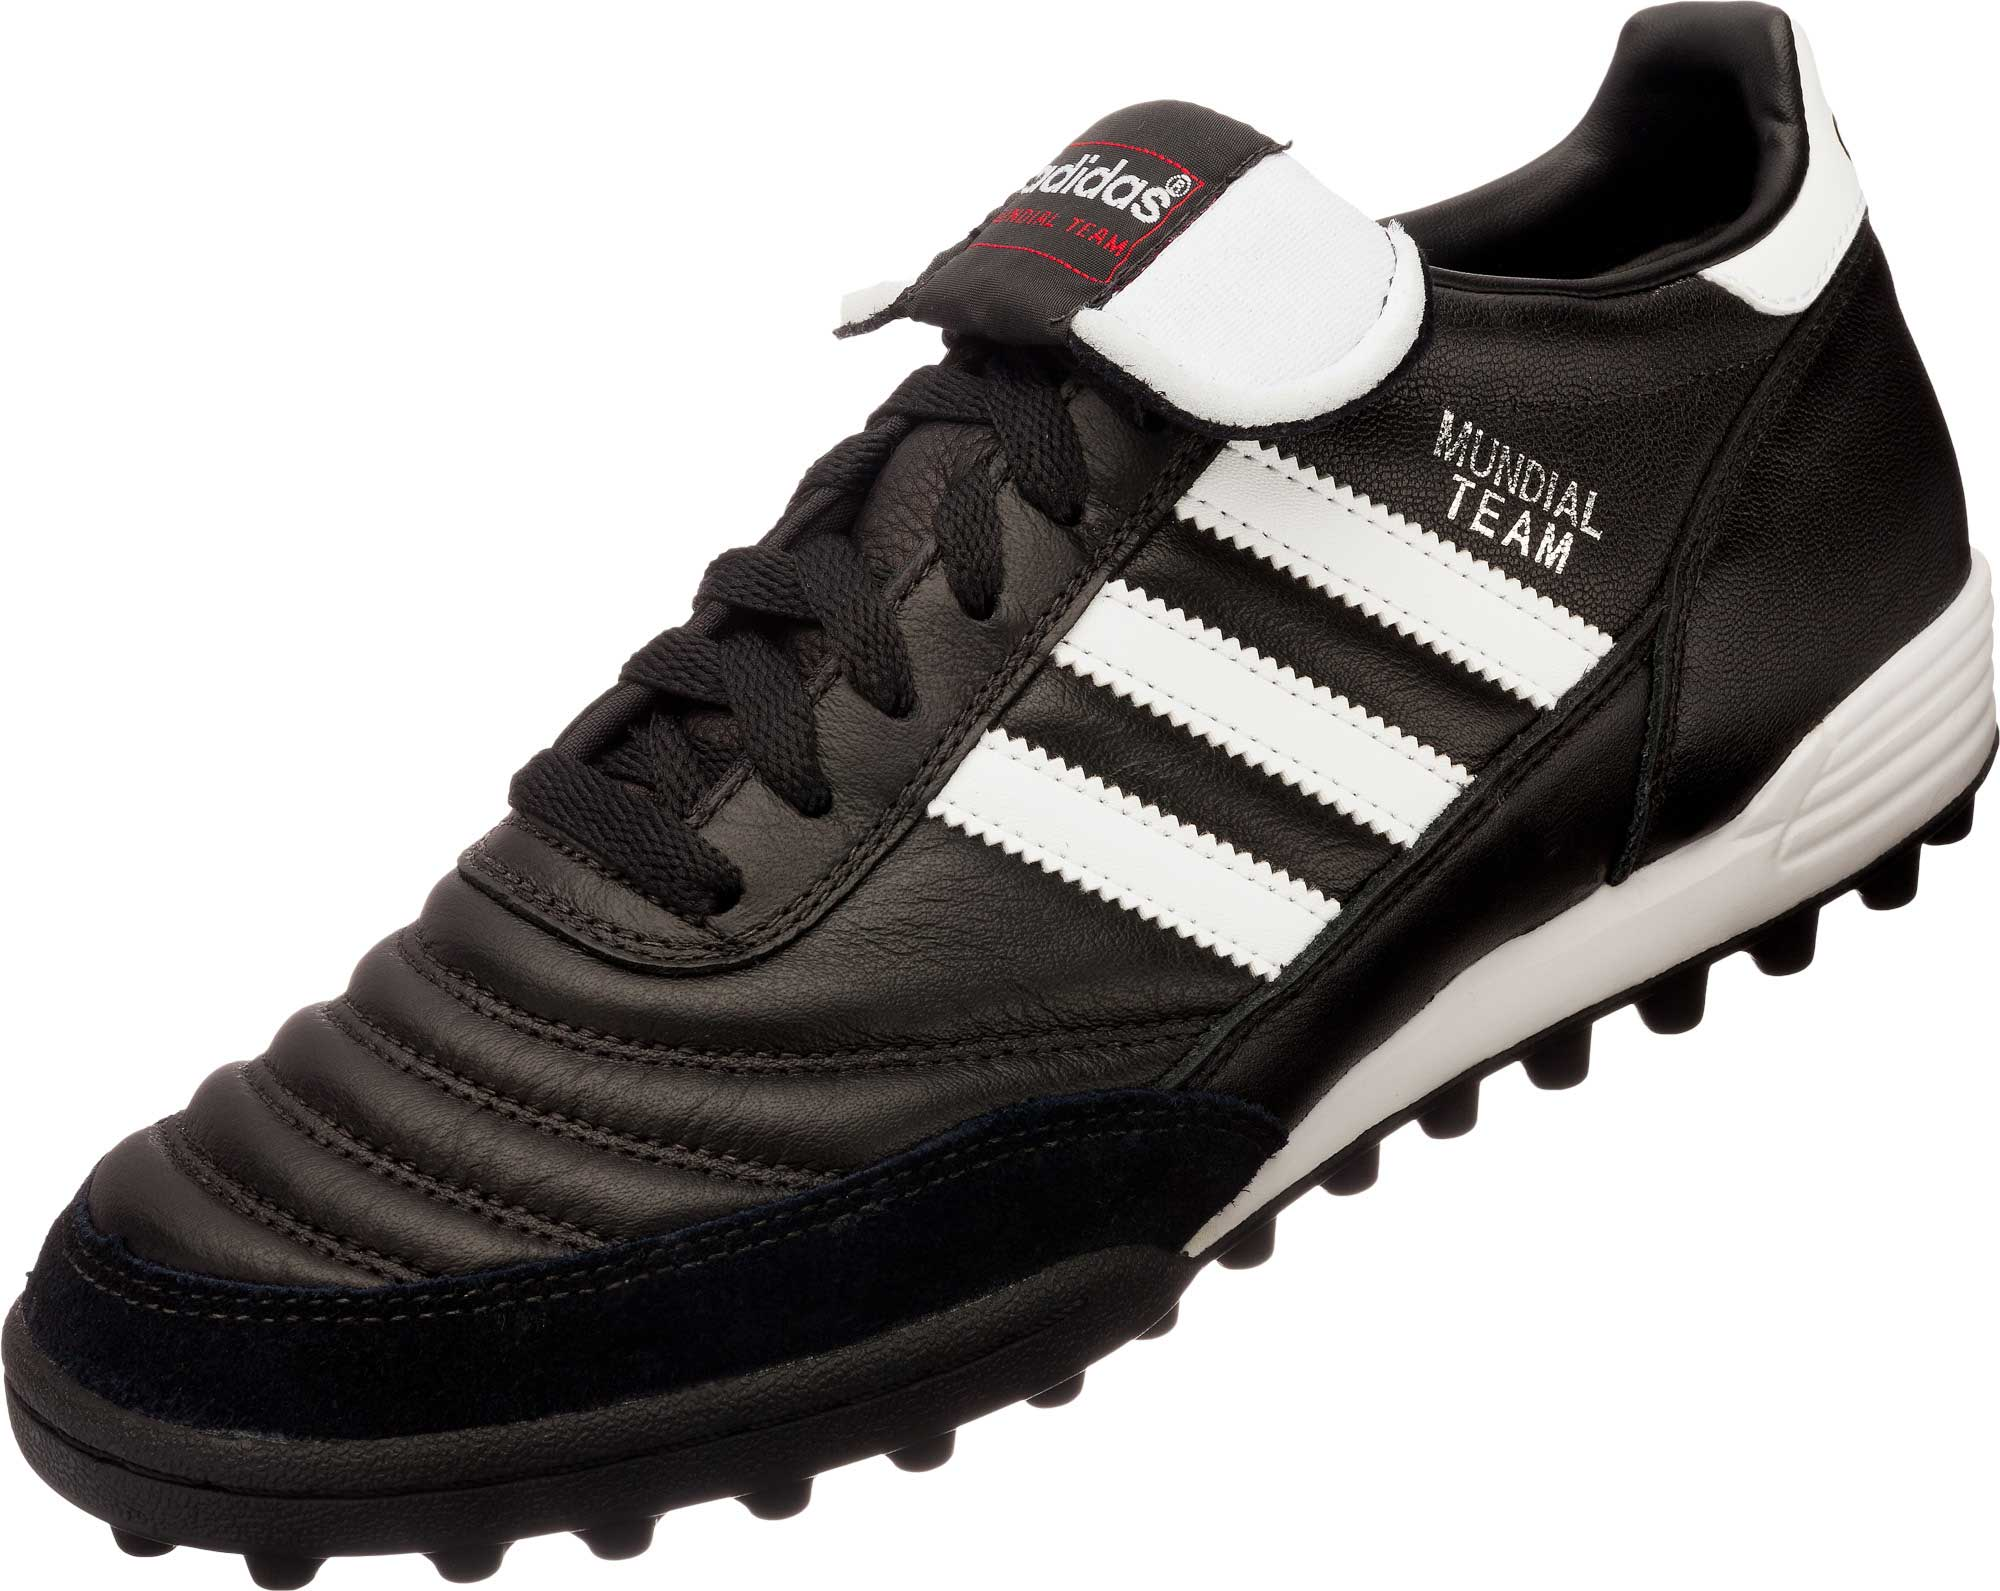 special section promotion 60% clearance adidas Mundial Team Turf Soccer Shoe